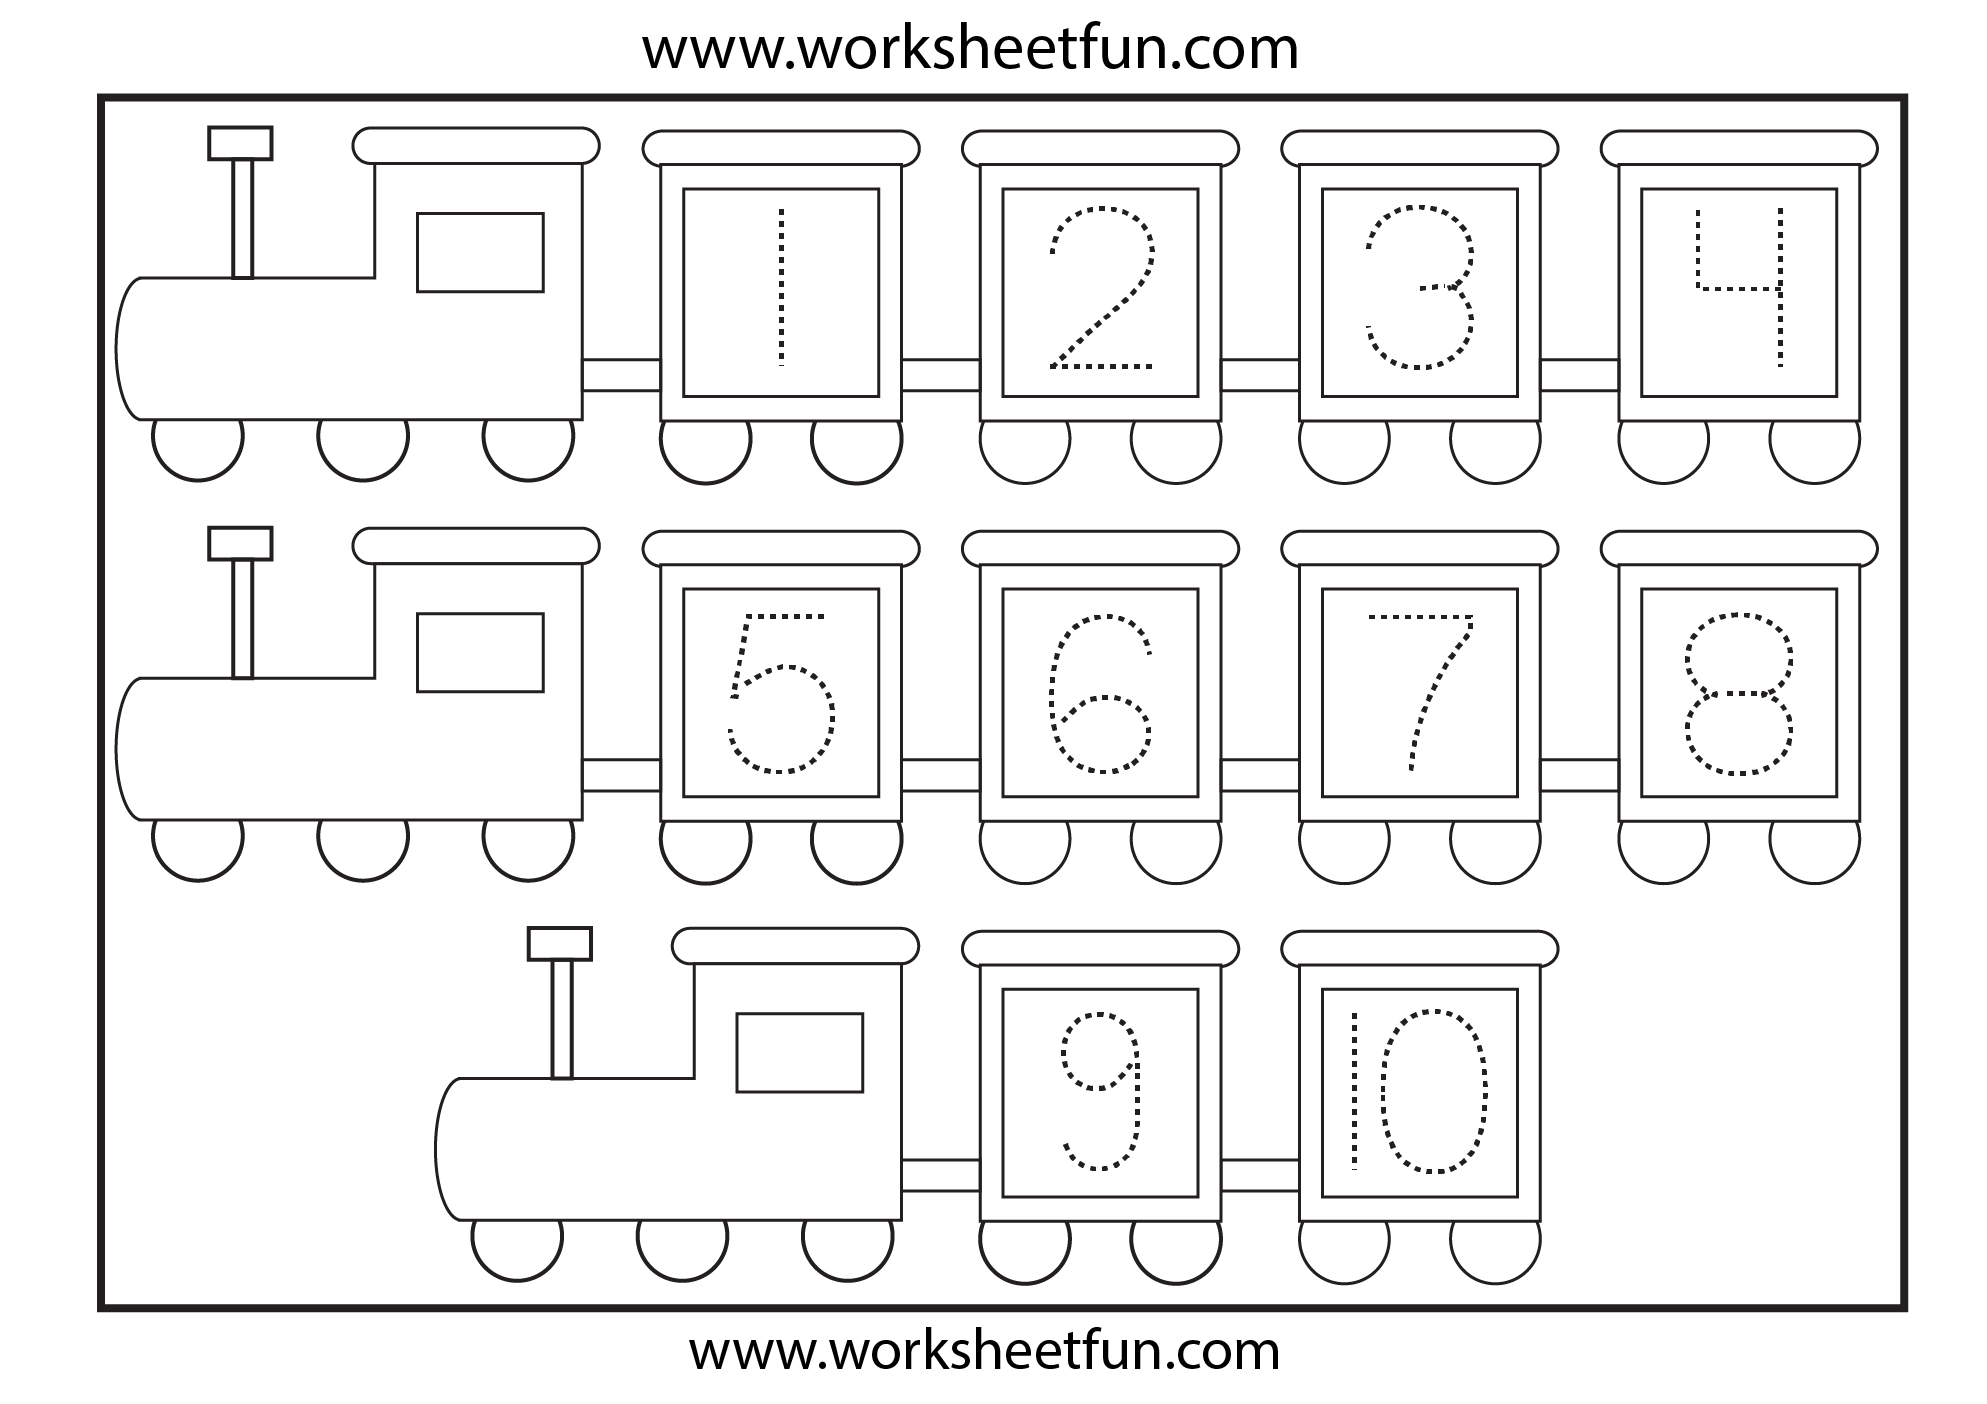 worksheet Number Handwriting Worksheets number tracing worksheets free library download and trace 1 20 activity shelter